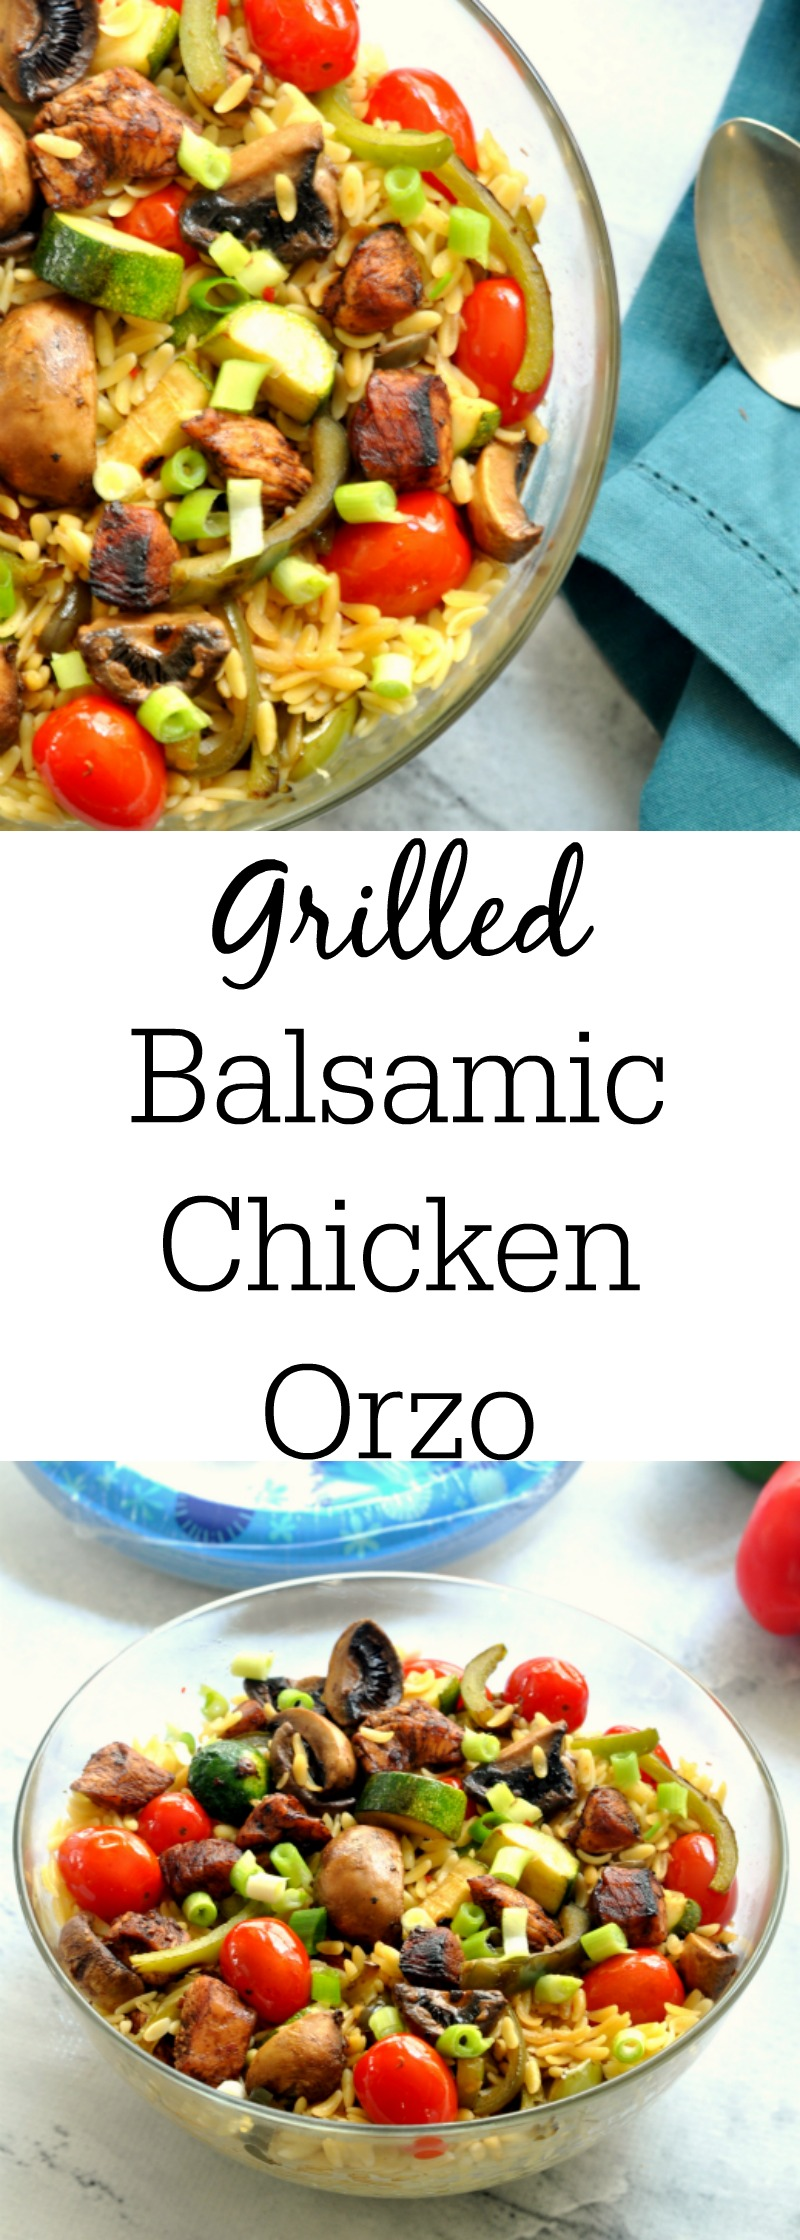 Grilled Balsamic Chicken and Vegetable Orzo